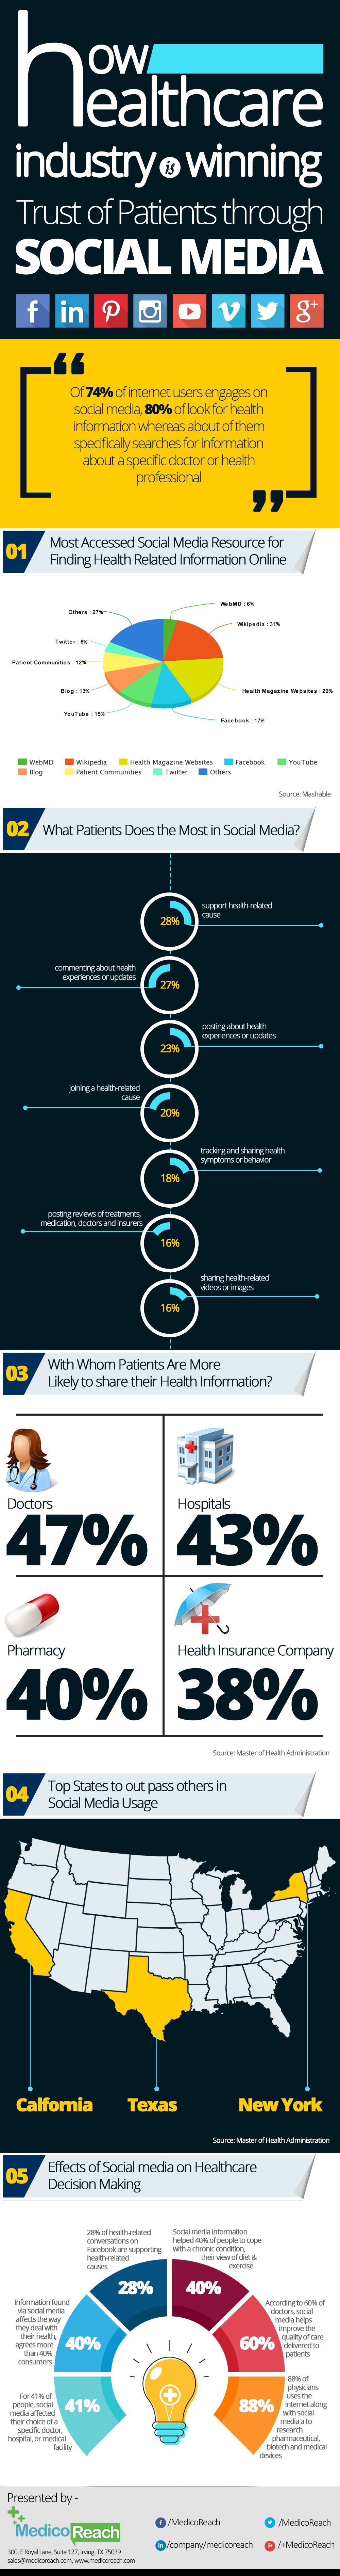 how healthcare industry is winning the trust of patients through social media